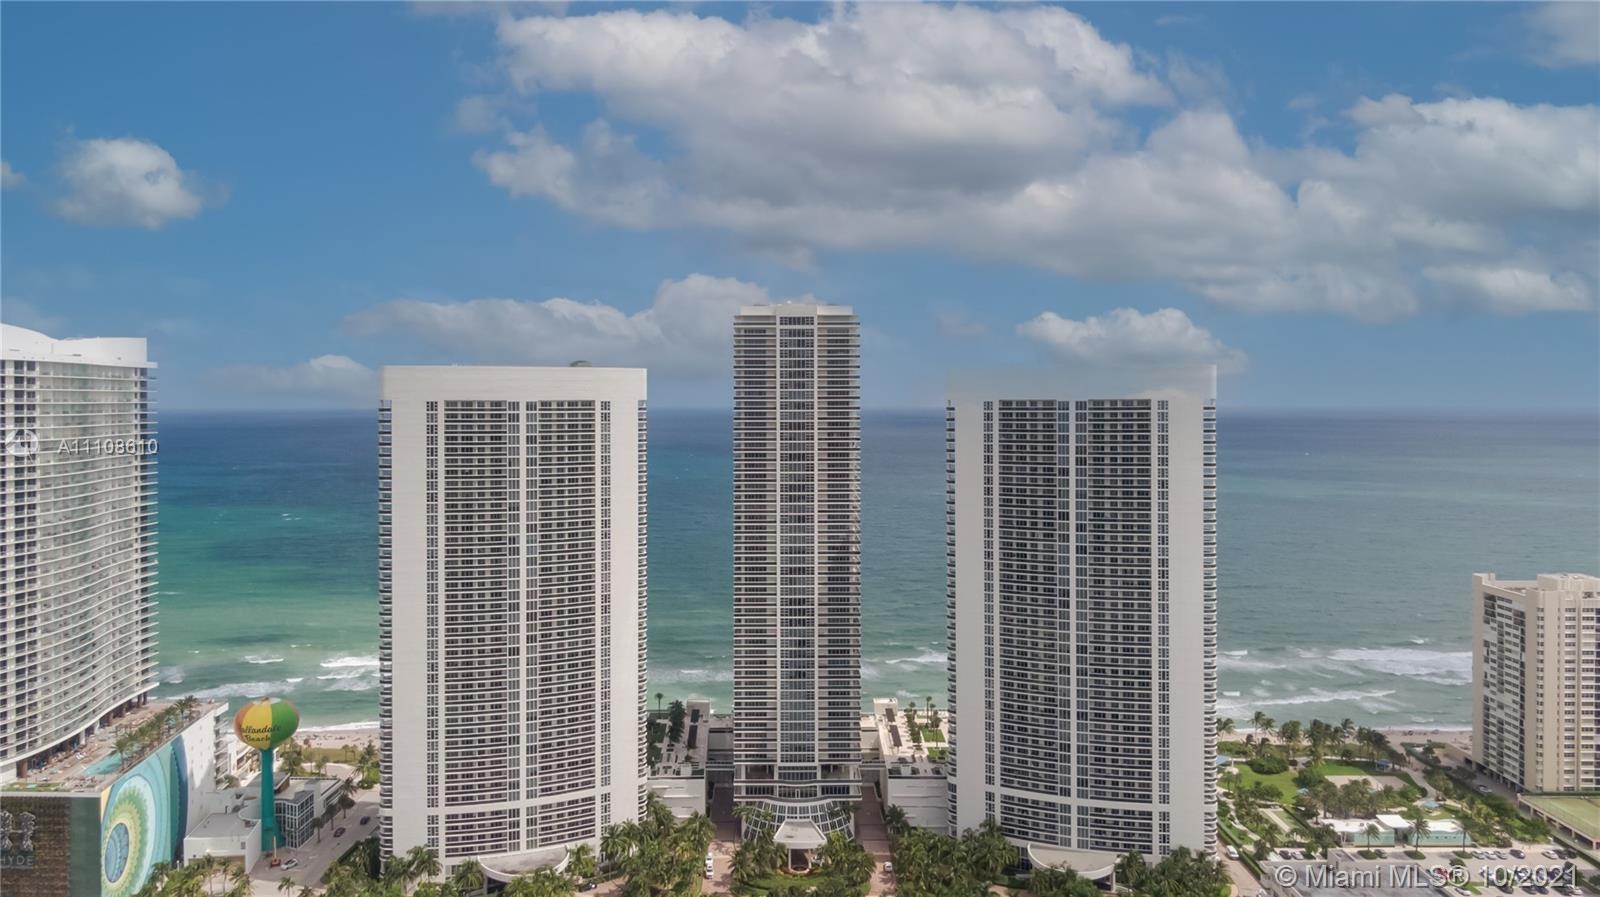 SPECTACULAR INTRACOASTAL & CITY VIEWS FROM THIS SPACIOUS 1BED/1BATH !! LAMINATED WOOD FLOORS THROUGH